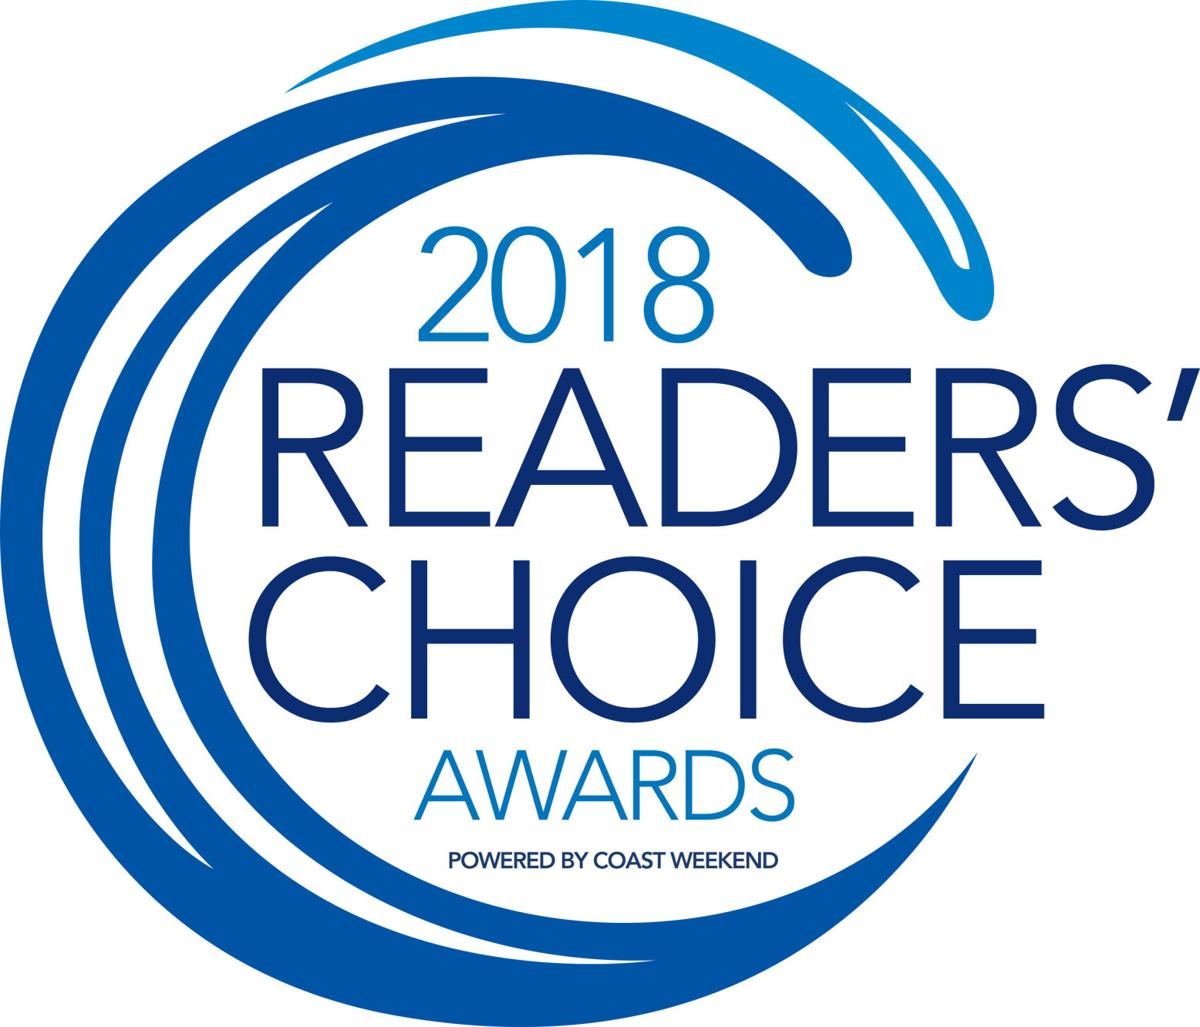 2018 Readers' Choice logo